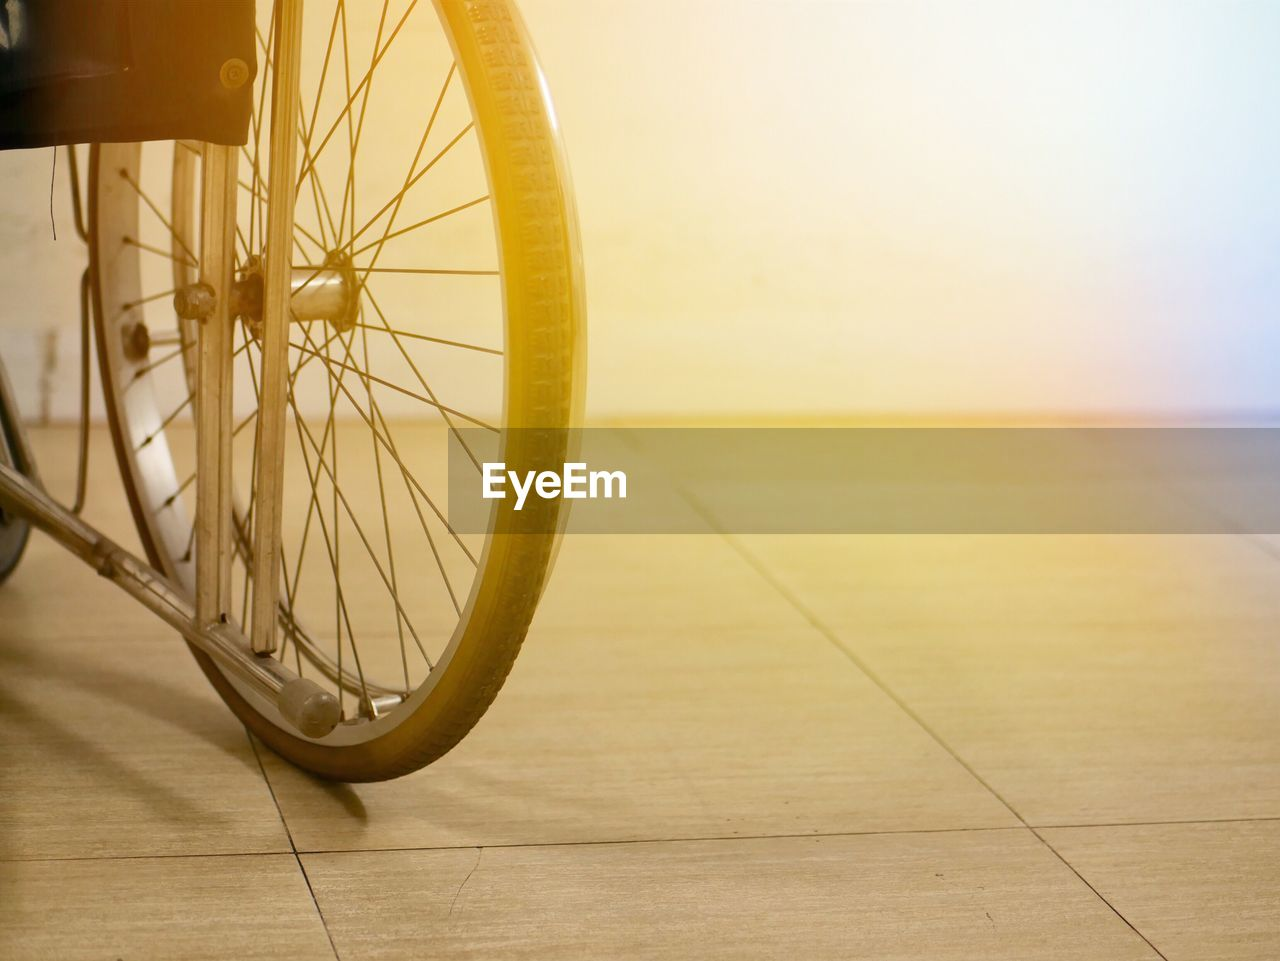 bicycle, wheel, land vehicle, transportation, no people, spoke, mode of transportation, stationary, focus on foreground, indoors, close-up, tire, wood - material, flooring, day, travel, wall - building feature, tiled floor, wood